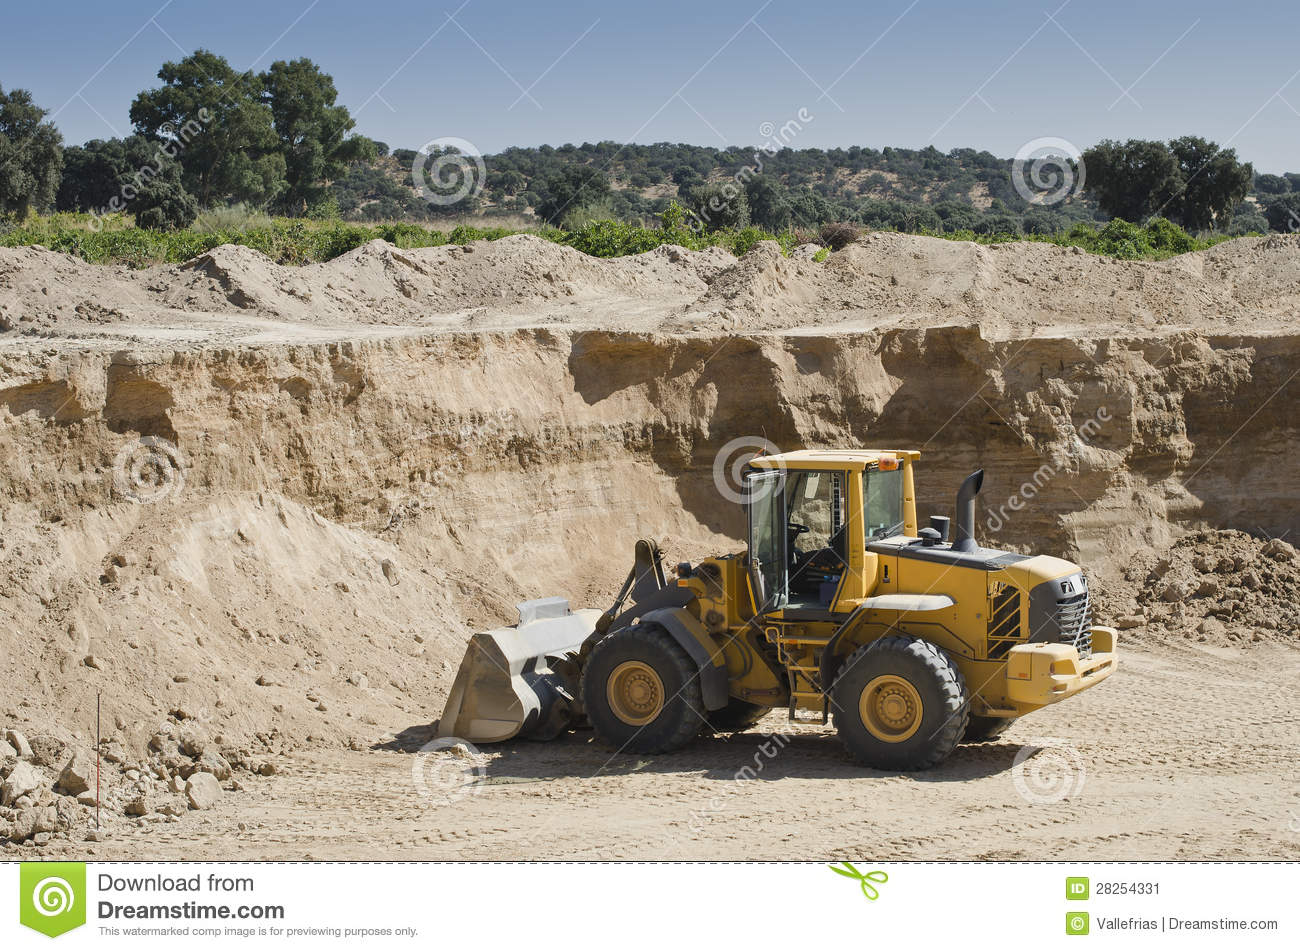 gravel pit stock image image 28254331